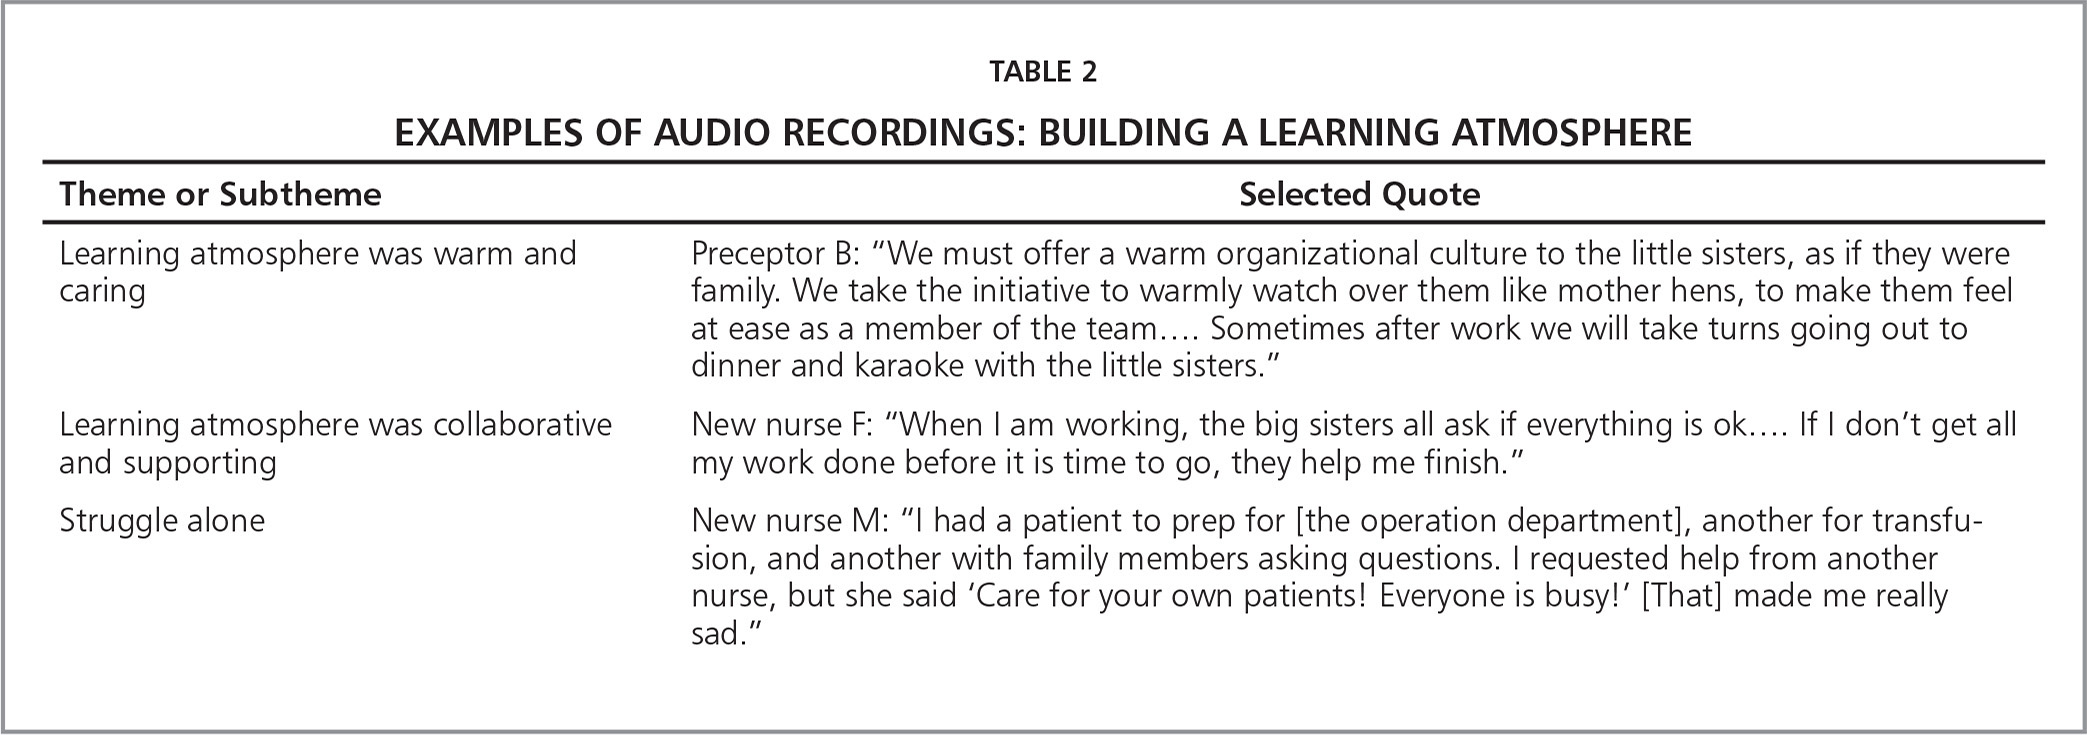 Examples of Audio Recordings: Building a Learning Atmosphere